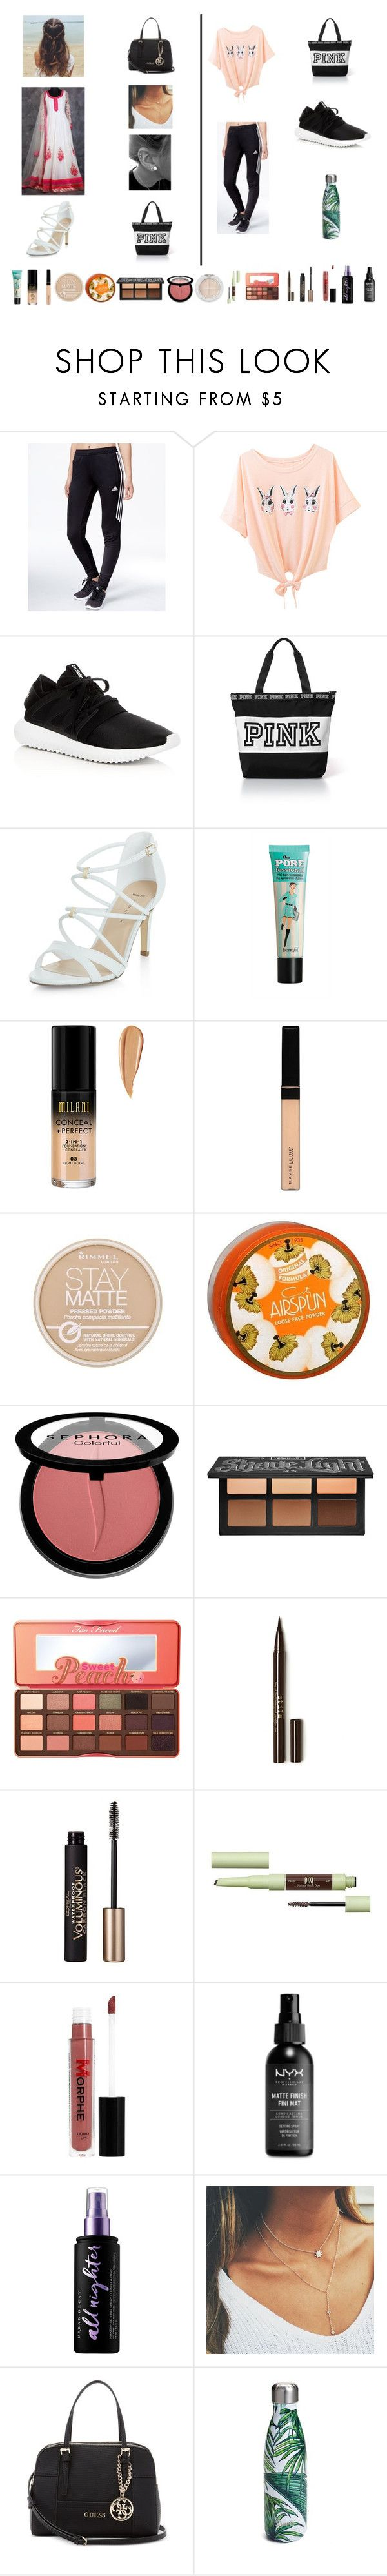 """""""Untitled #479"""" by riley0803 ❤ liked on Polyvore featuring adidas, New Look, Maybelline, Rimmel, Coty, Sephora Collection, Kat Von D, Too Faced Cosmetics, Stila and L'Oréal Paris"""